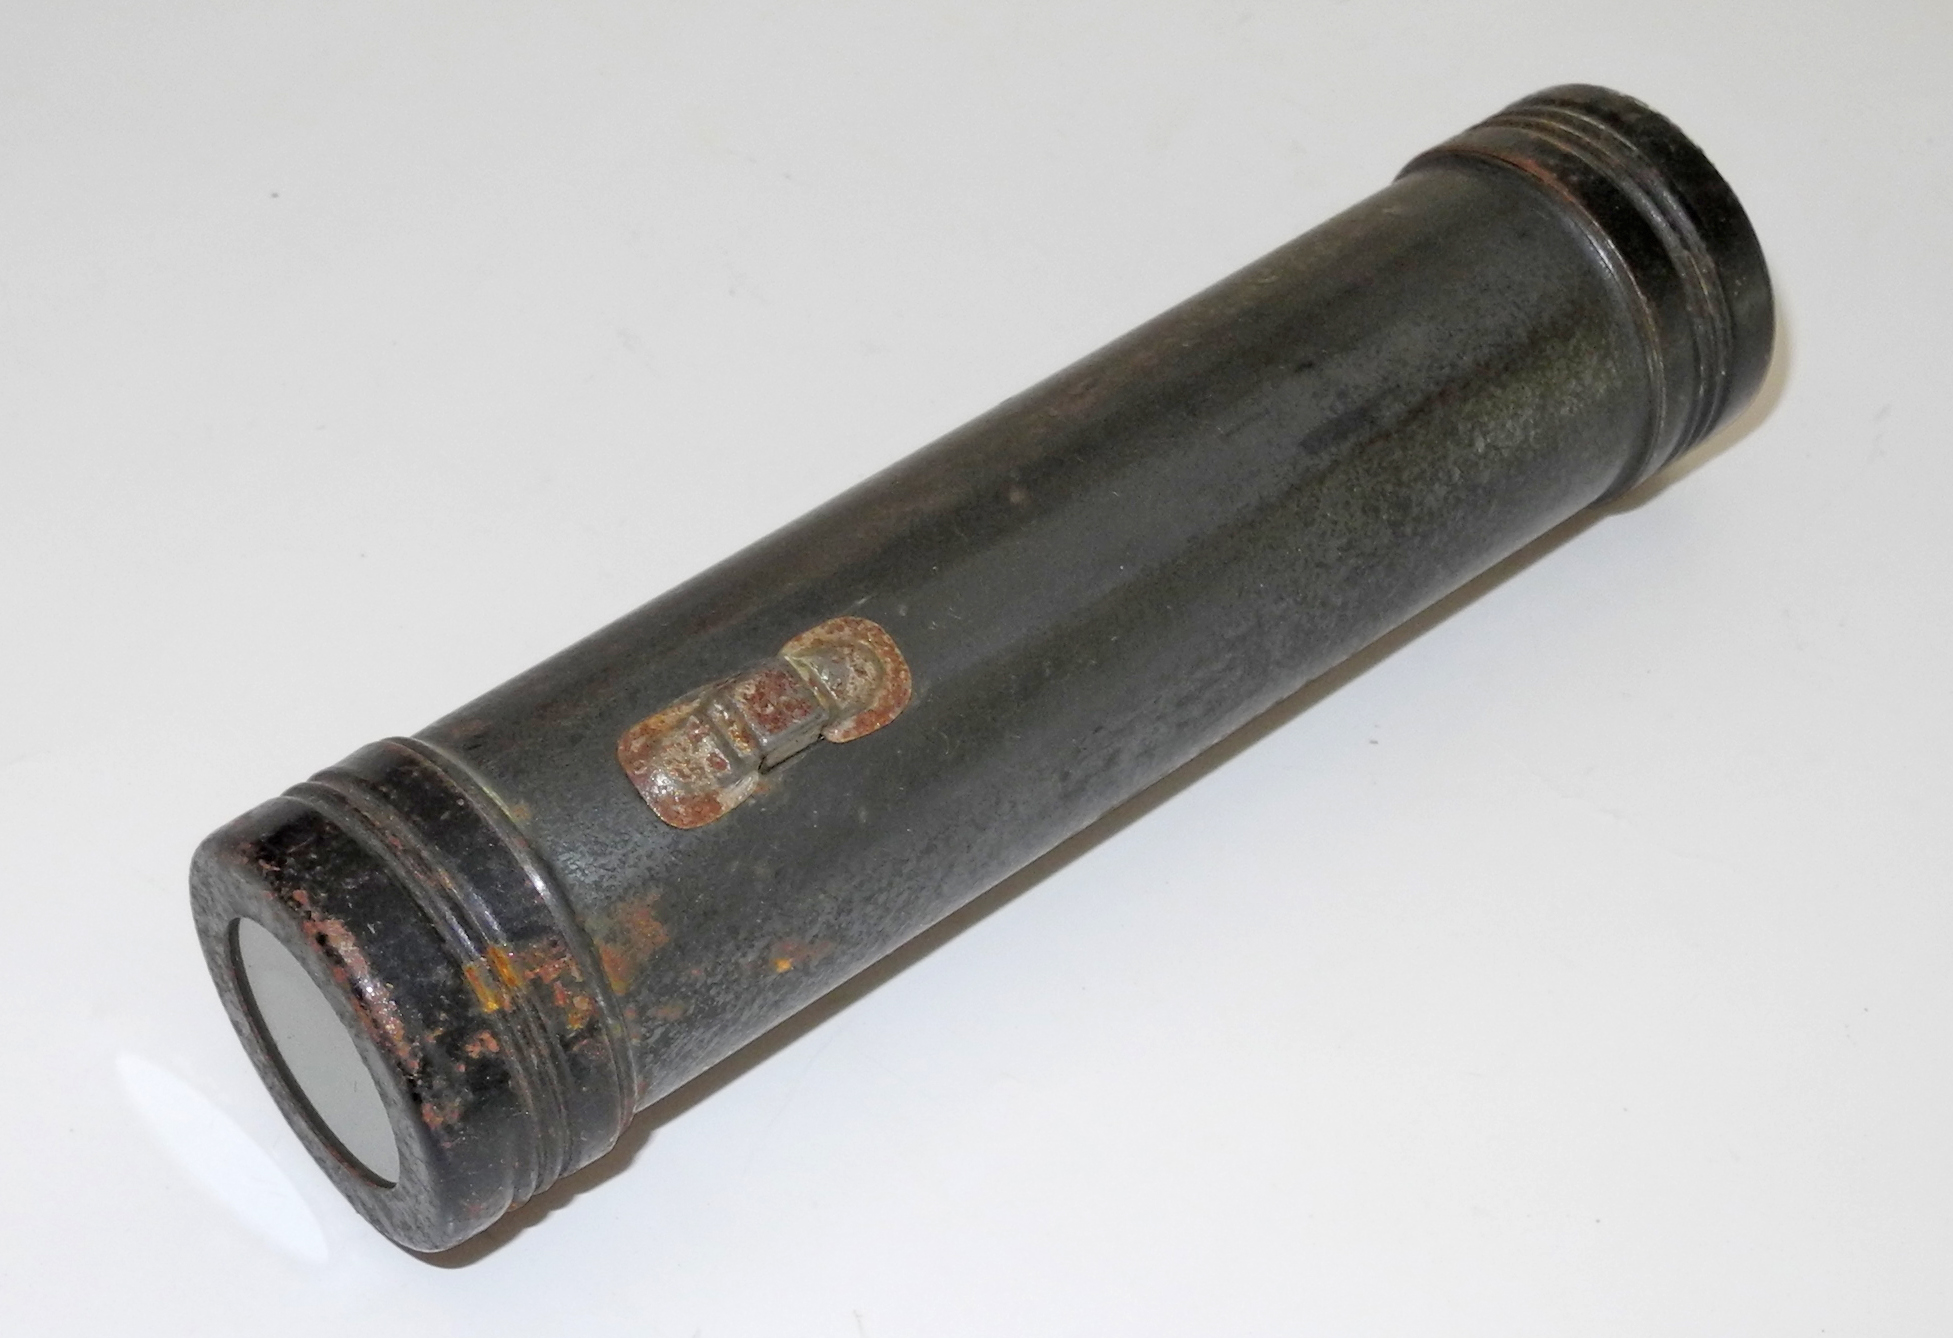 ARP / Home Front WW2 torch